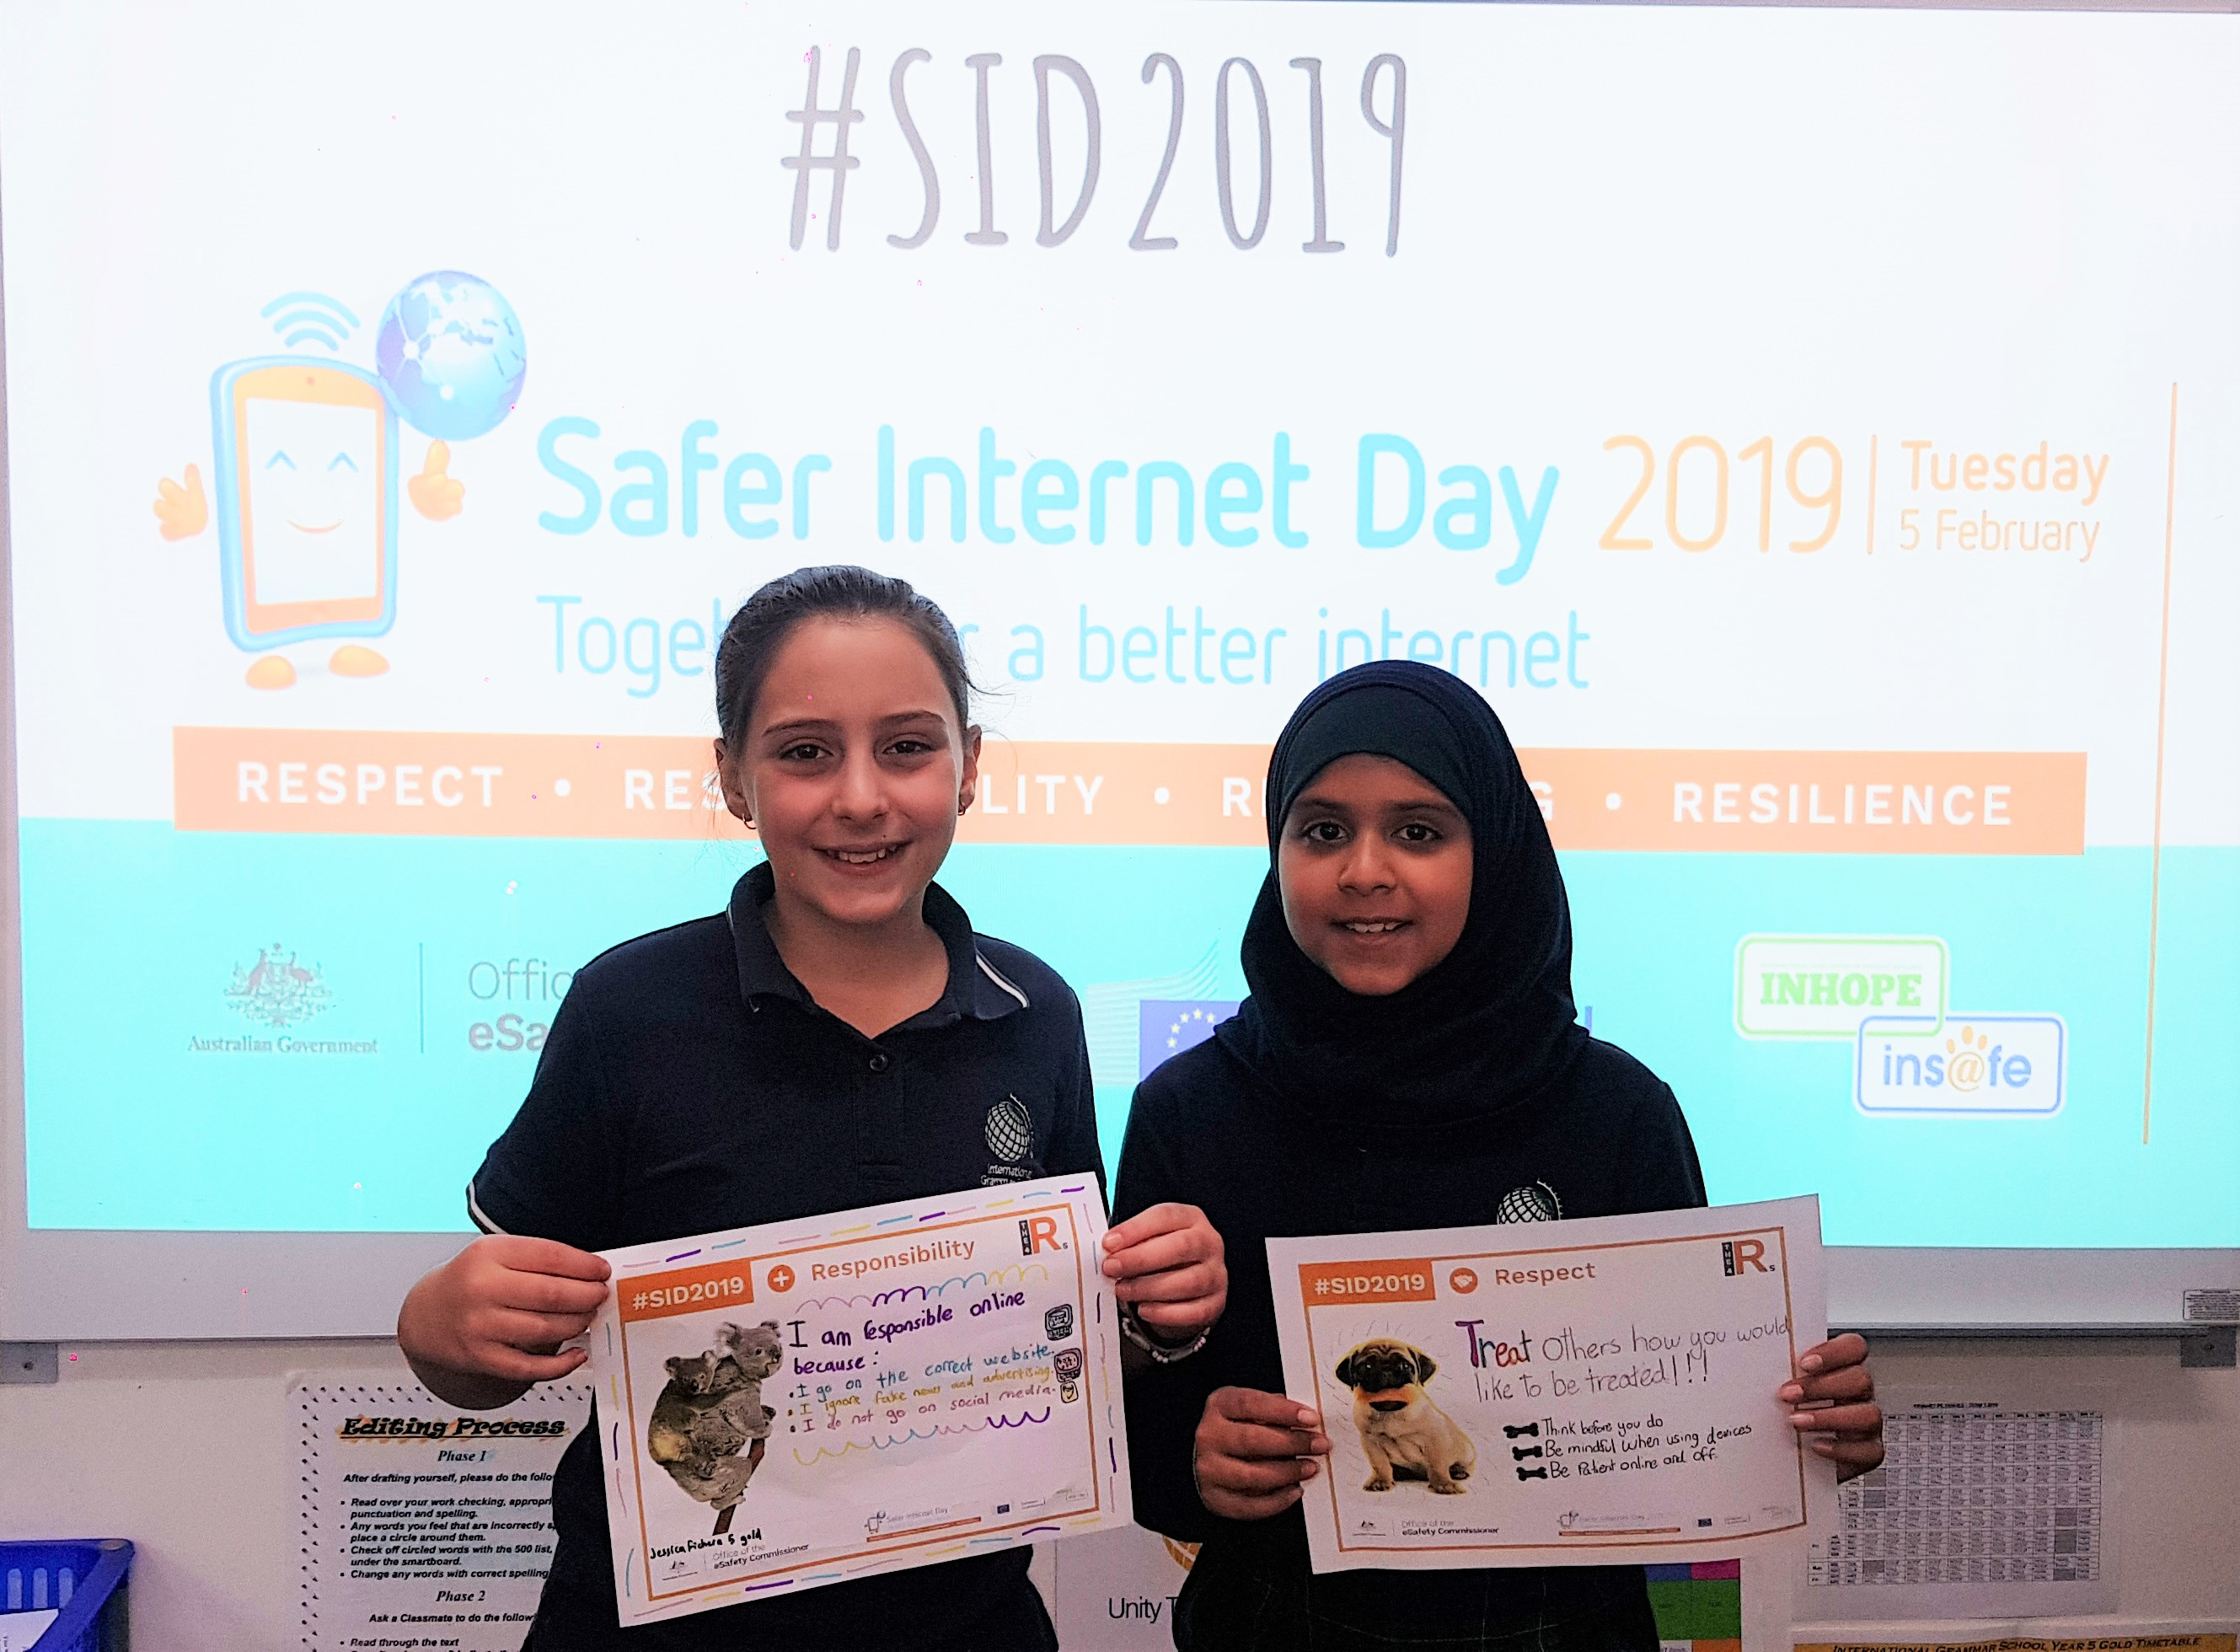 igs-safer-internet-day-2019-pledge